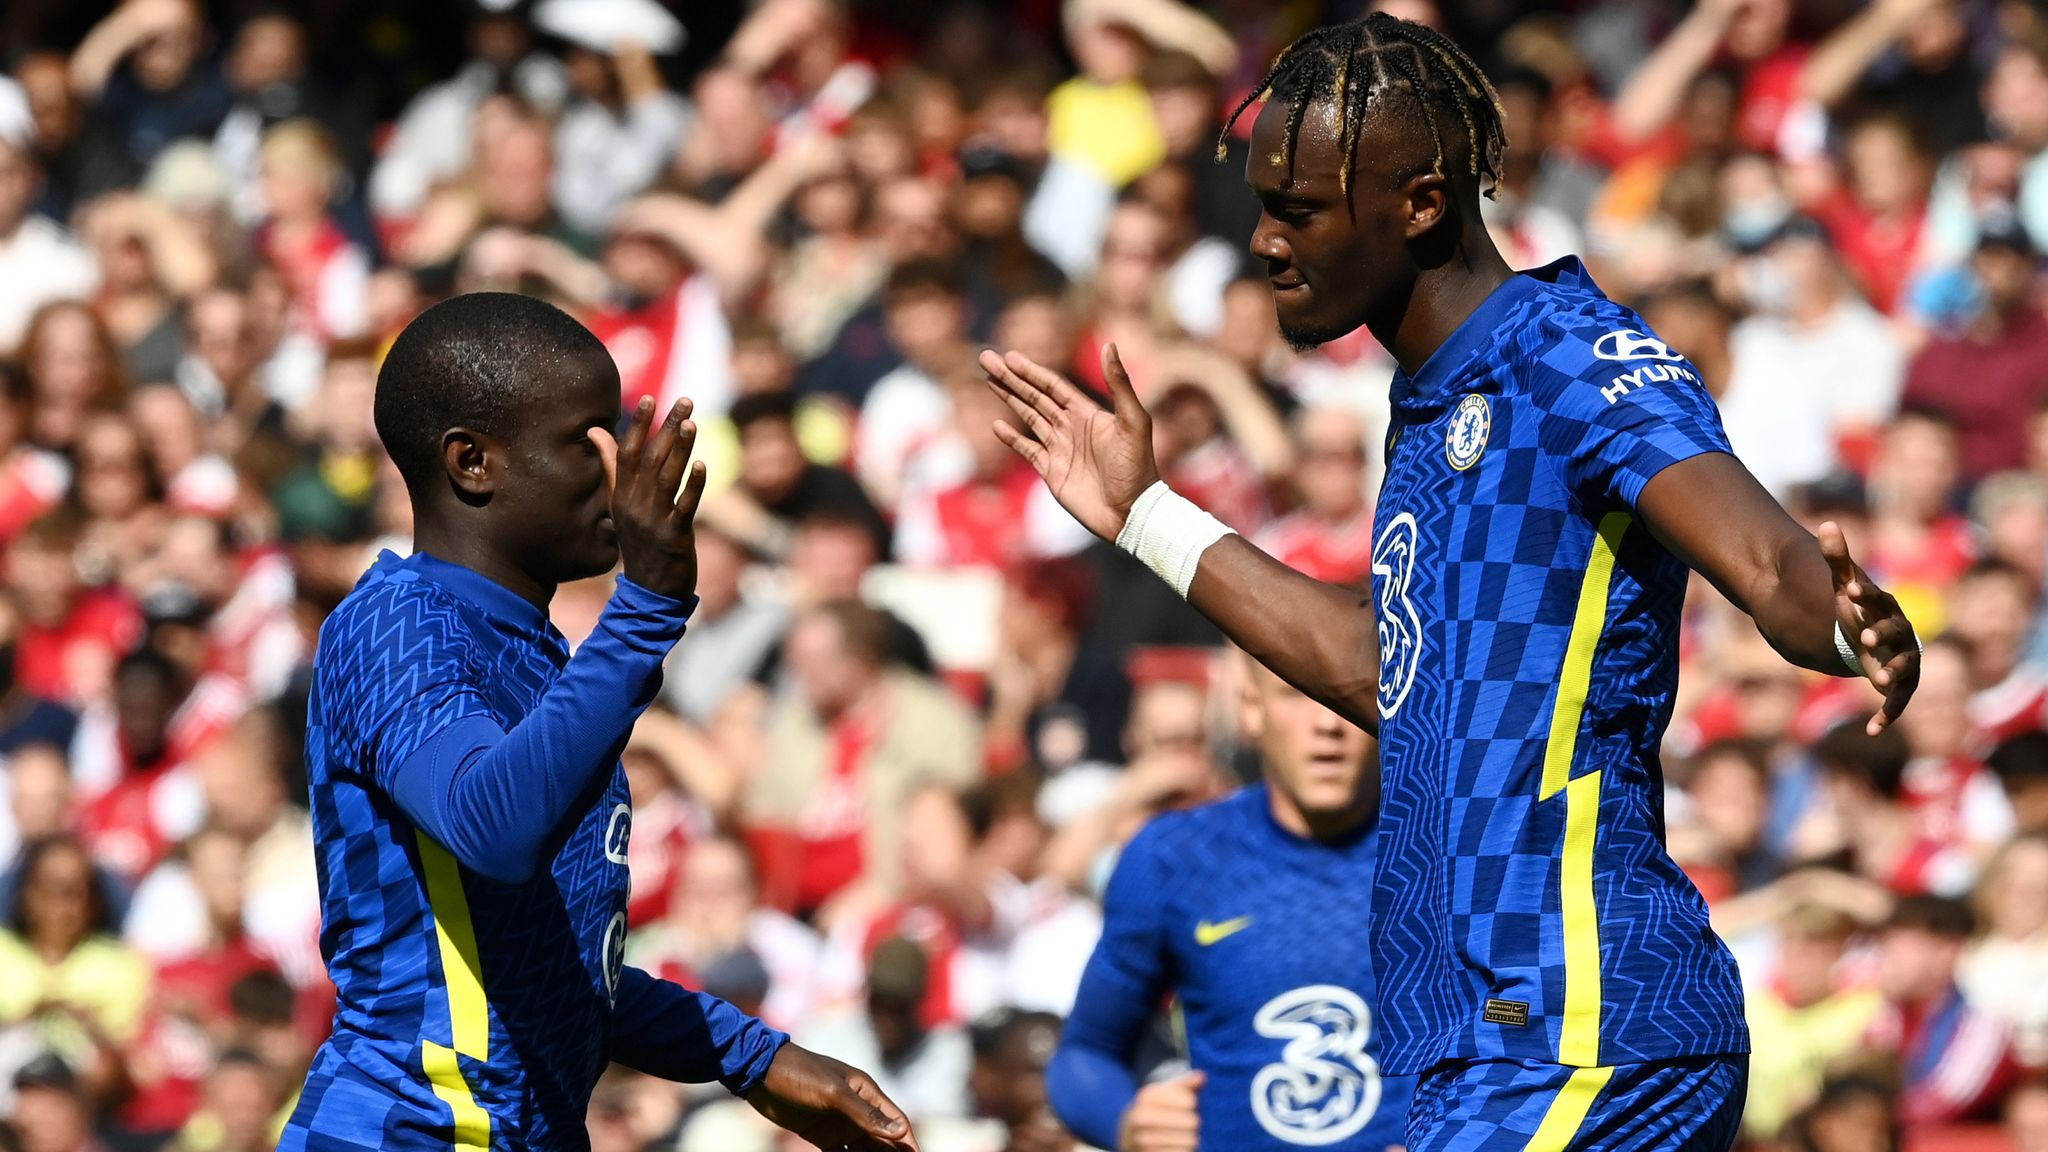 Arsenal 1-2 Chelsea: Thomas Tuchel's side secure confidence-boosting  victory at Emirates | Football News | Sky Sports